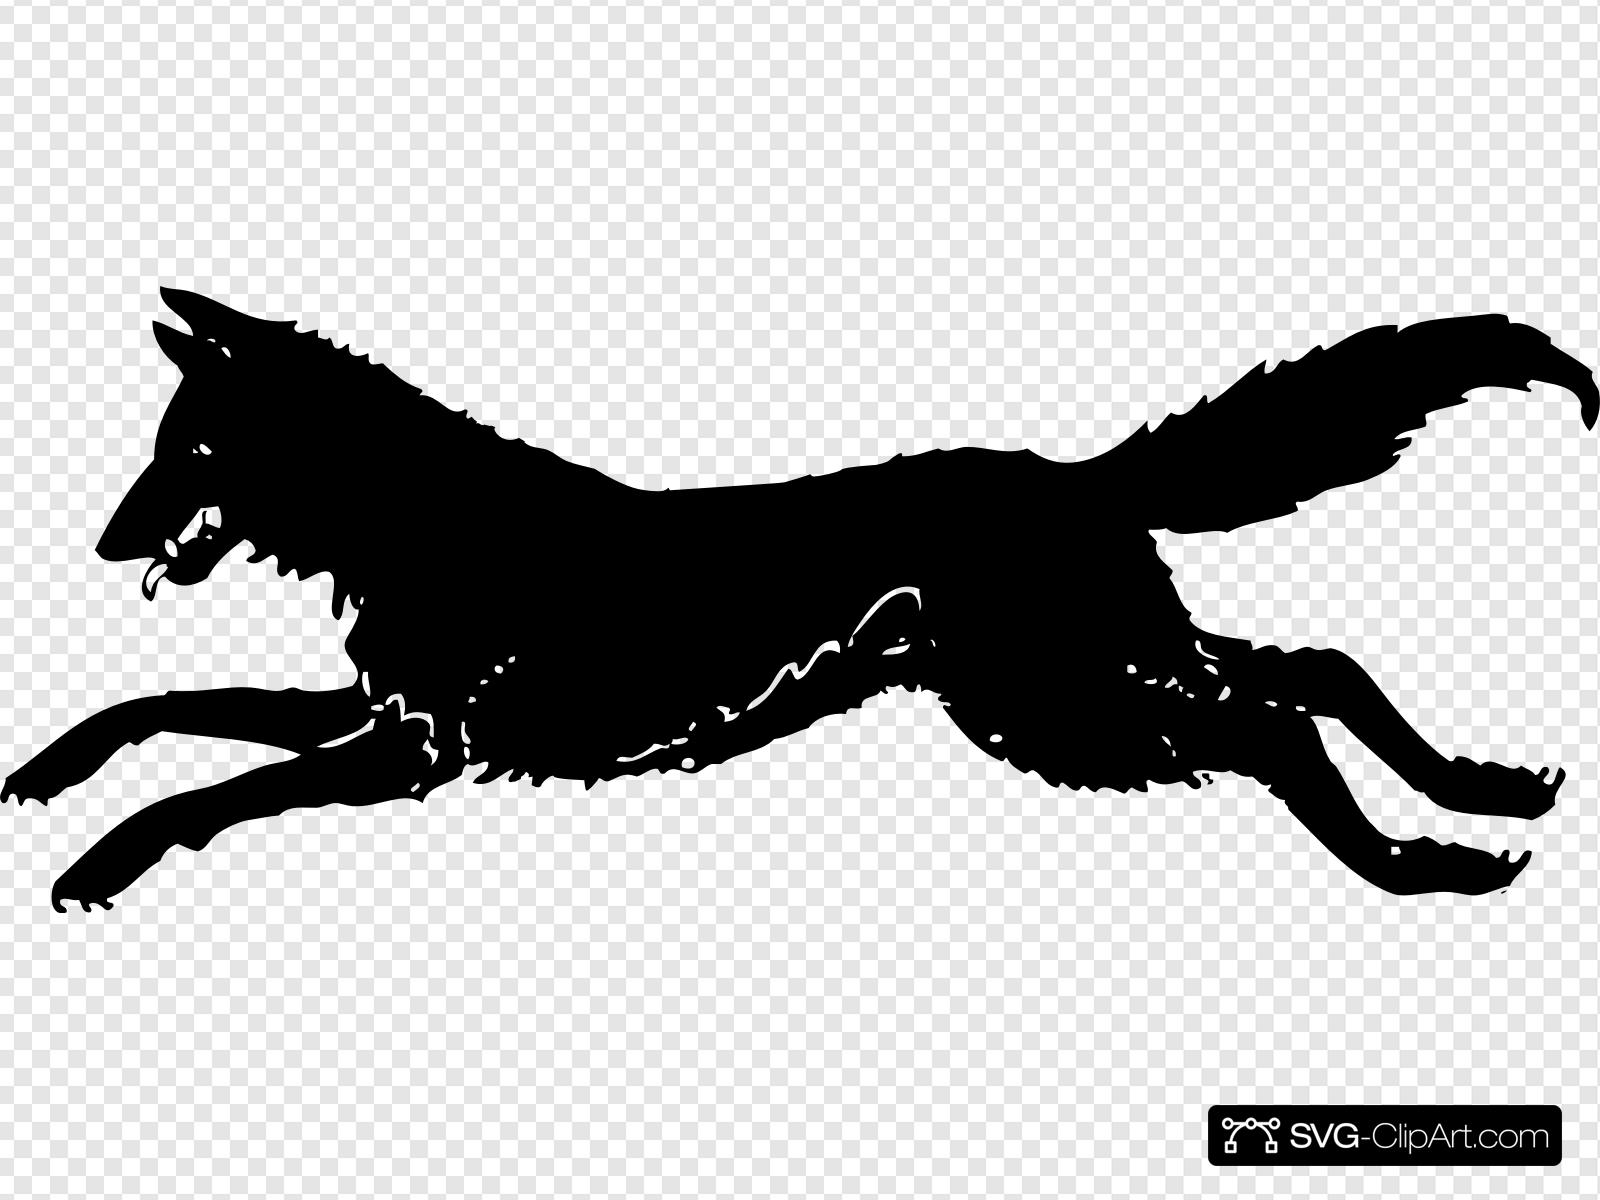 Running Wolf Silhouette Clip art, Icon and SVG.